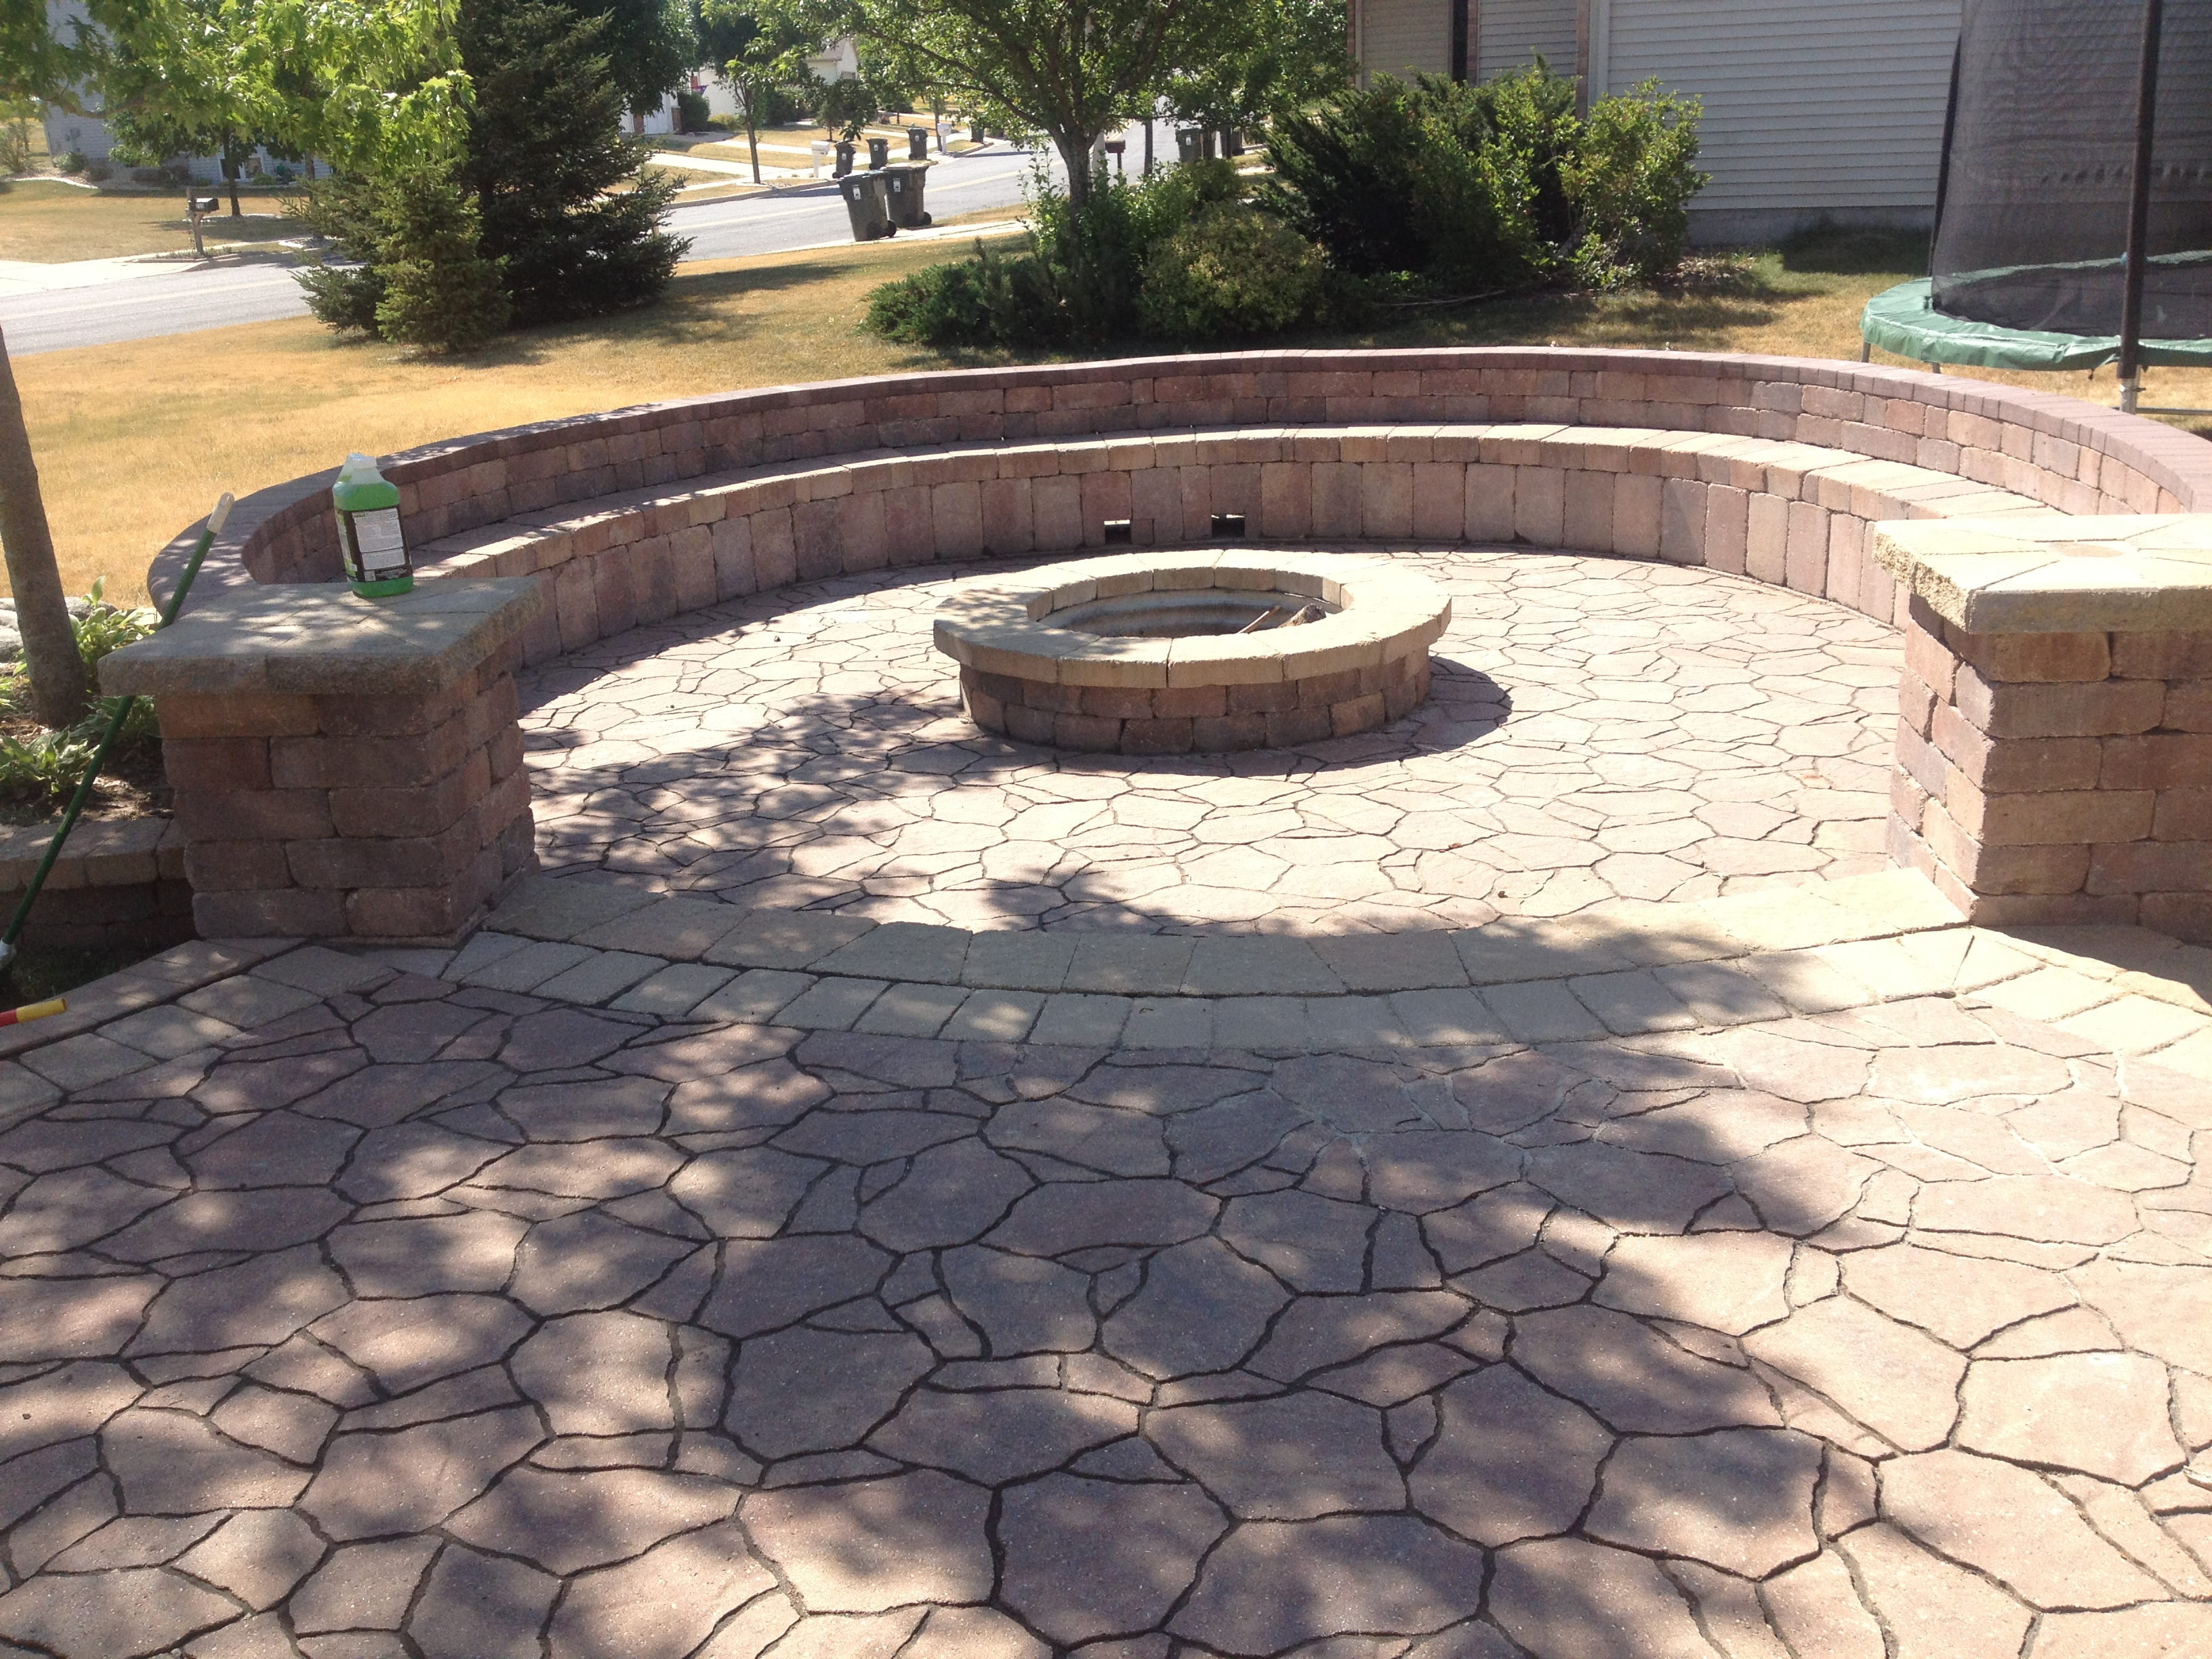 Patio Pavers | Patio Paver Ideas | Madison WI | Marvins ... on Pavers Patio With Fire Pit id=99816